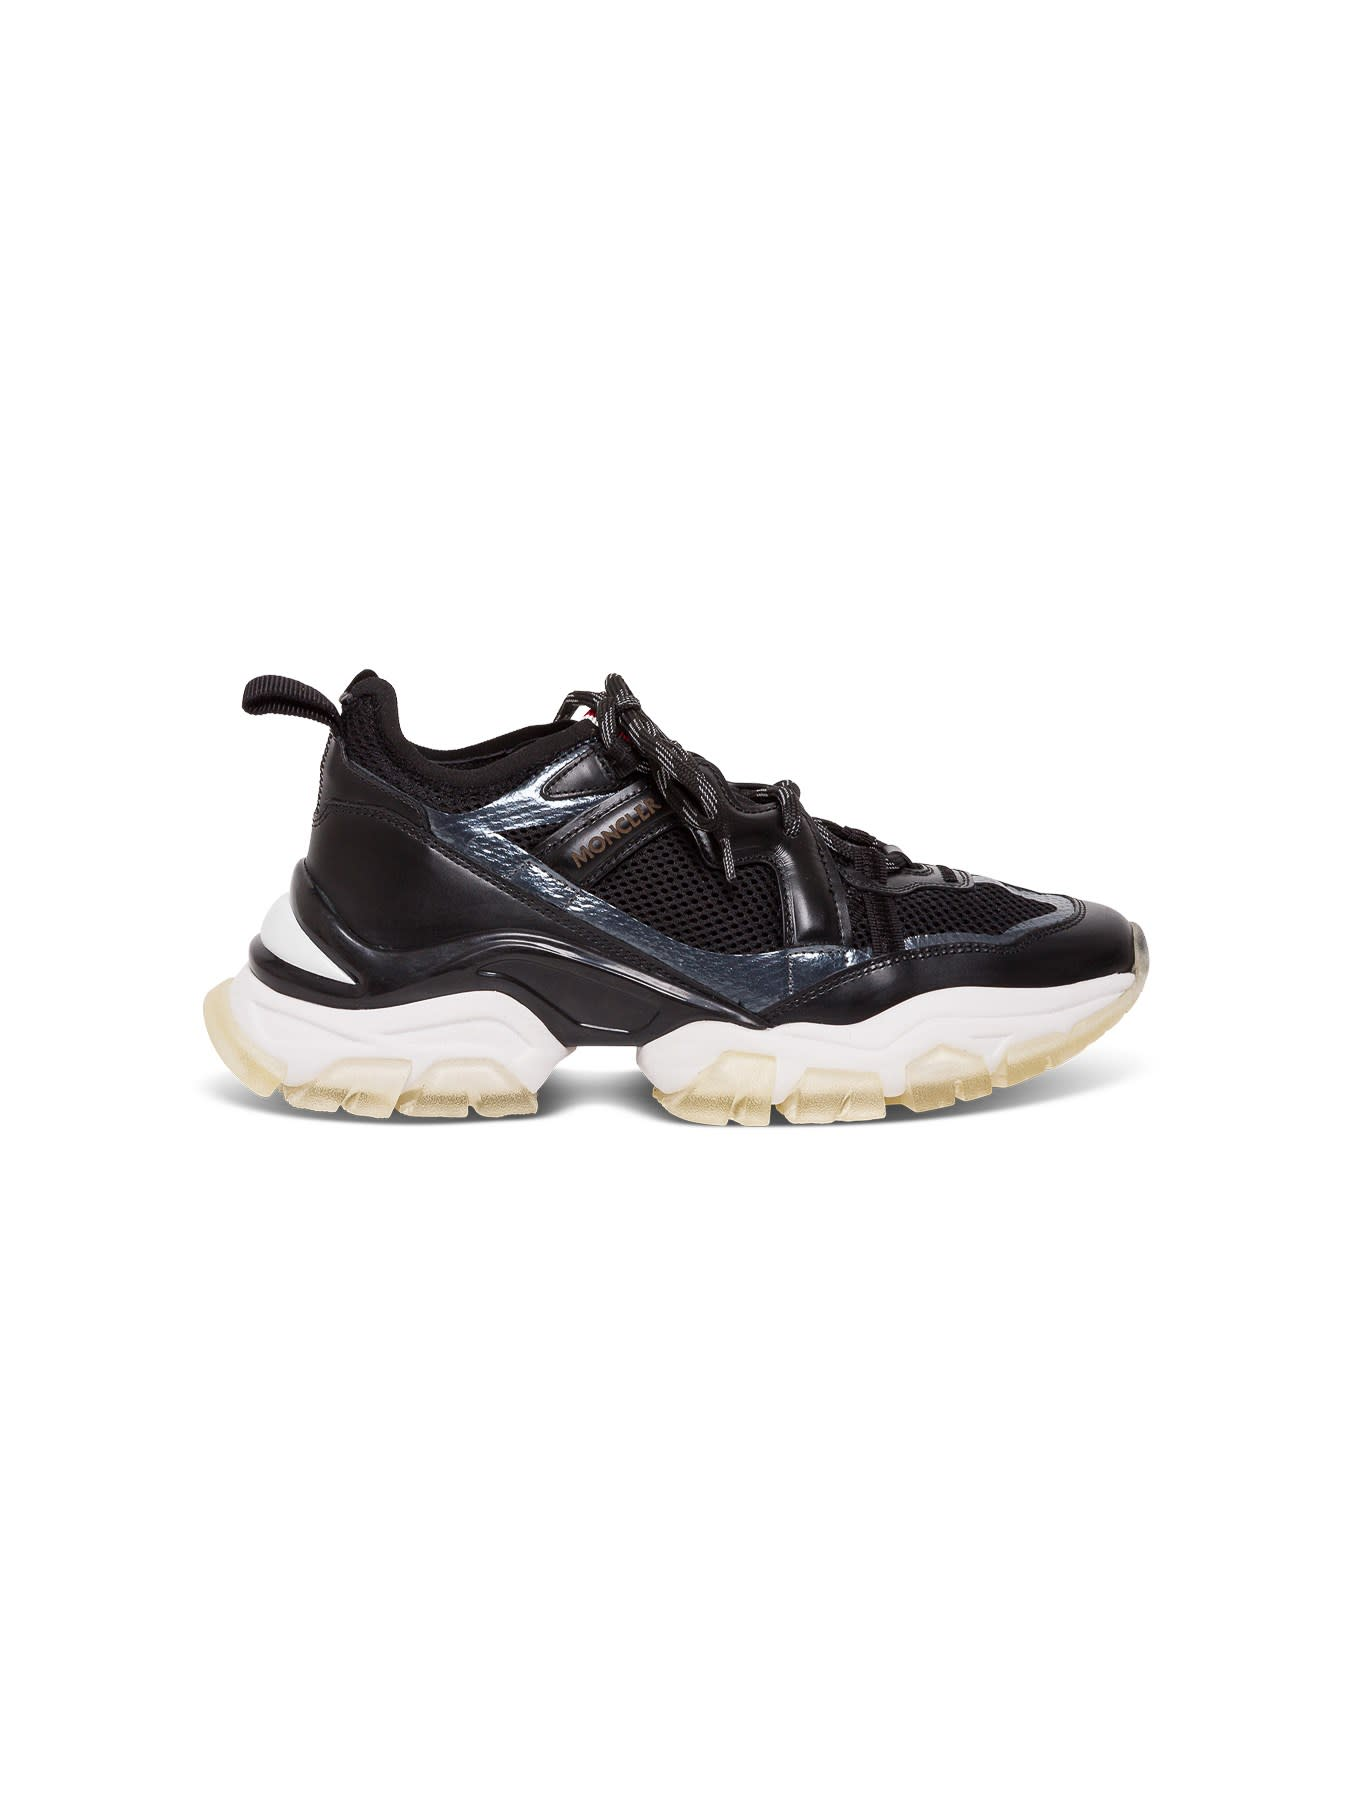 Moncler SNEAKERS IN BLACK LEATHER AND MESH